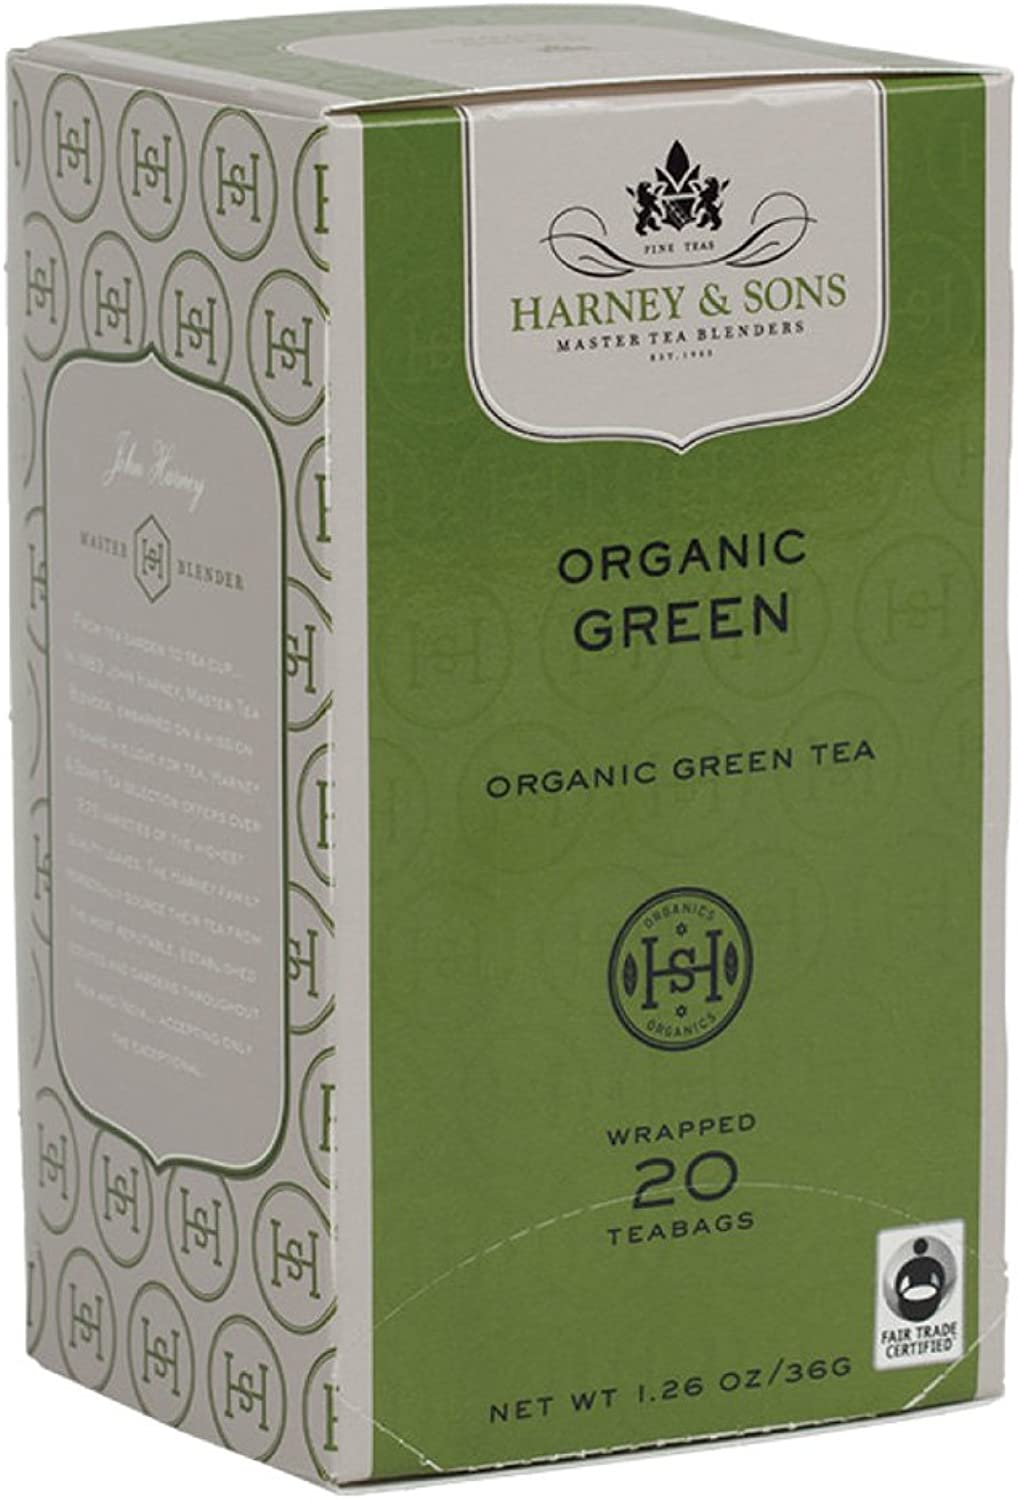 Harney and Sons Organic Green Teabags, 20 Count (Pack of 6)